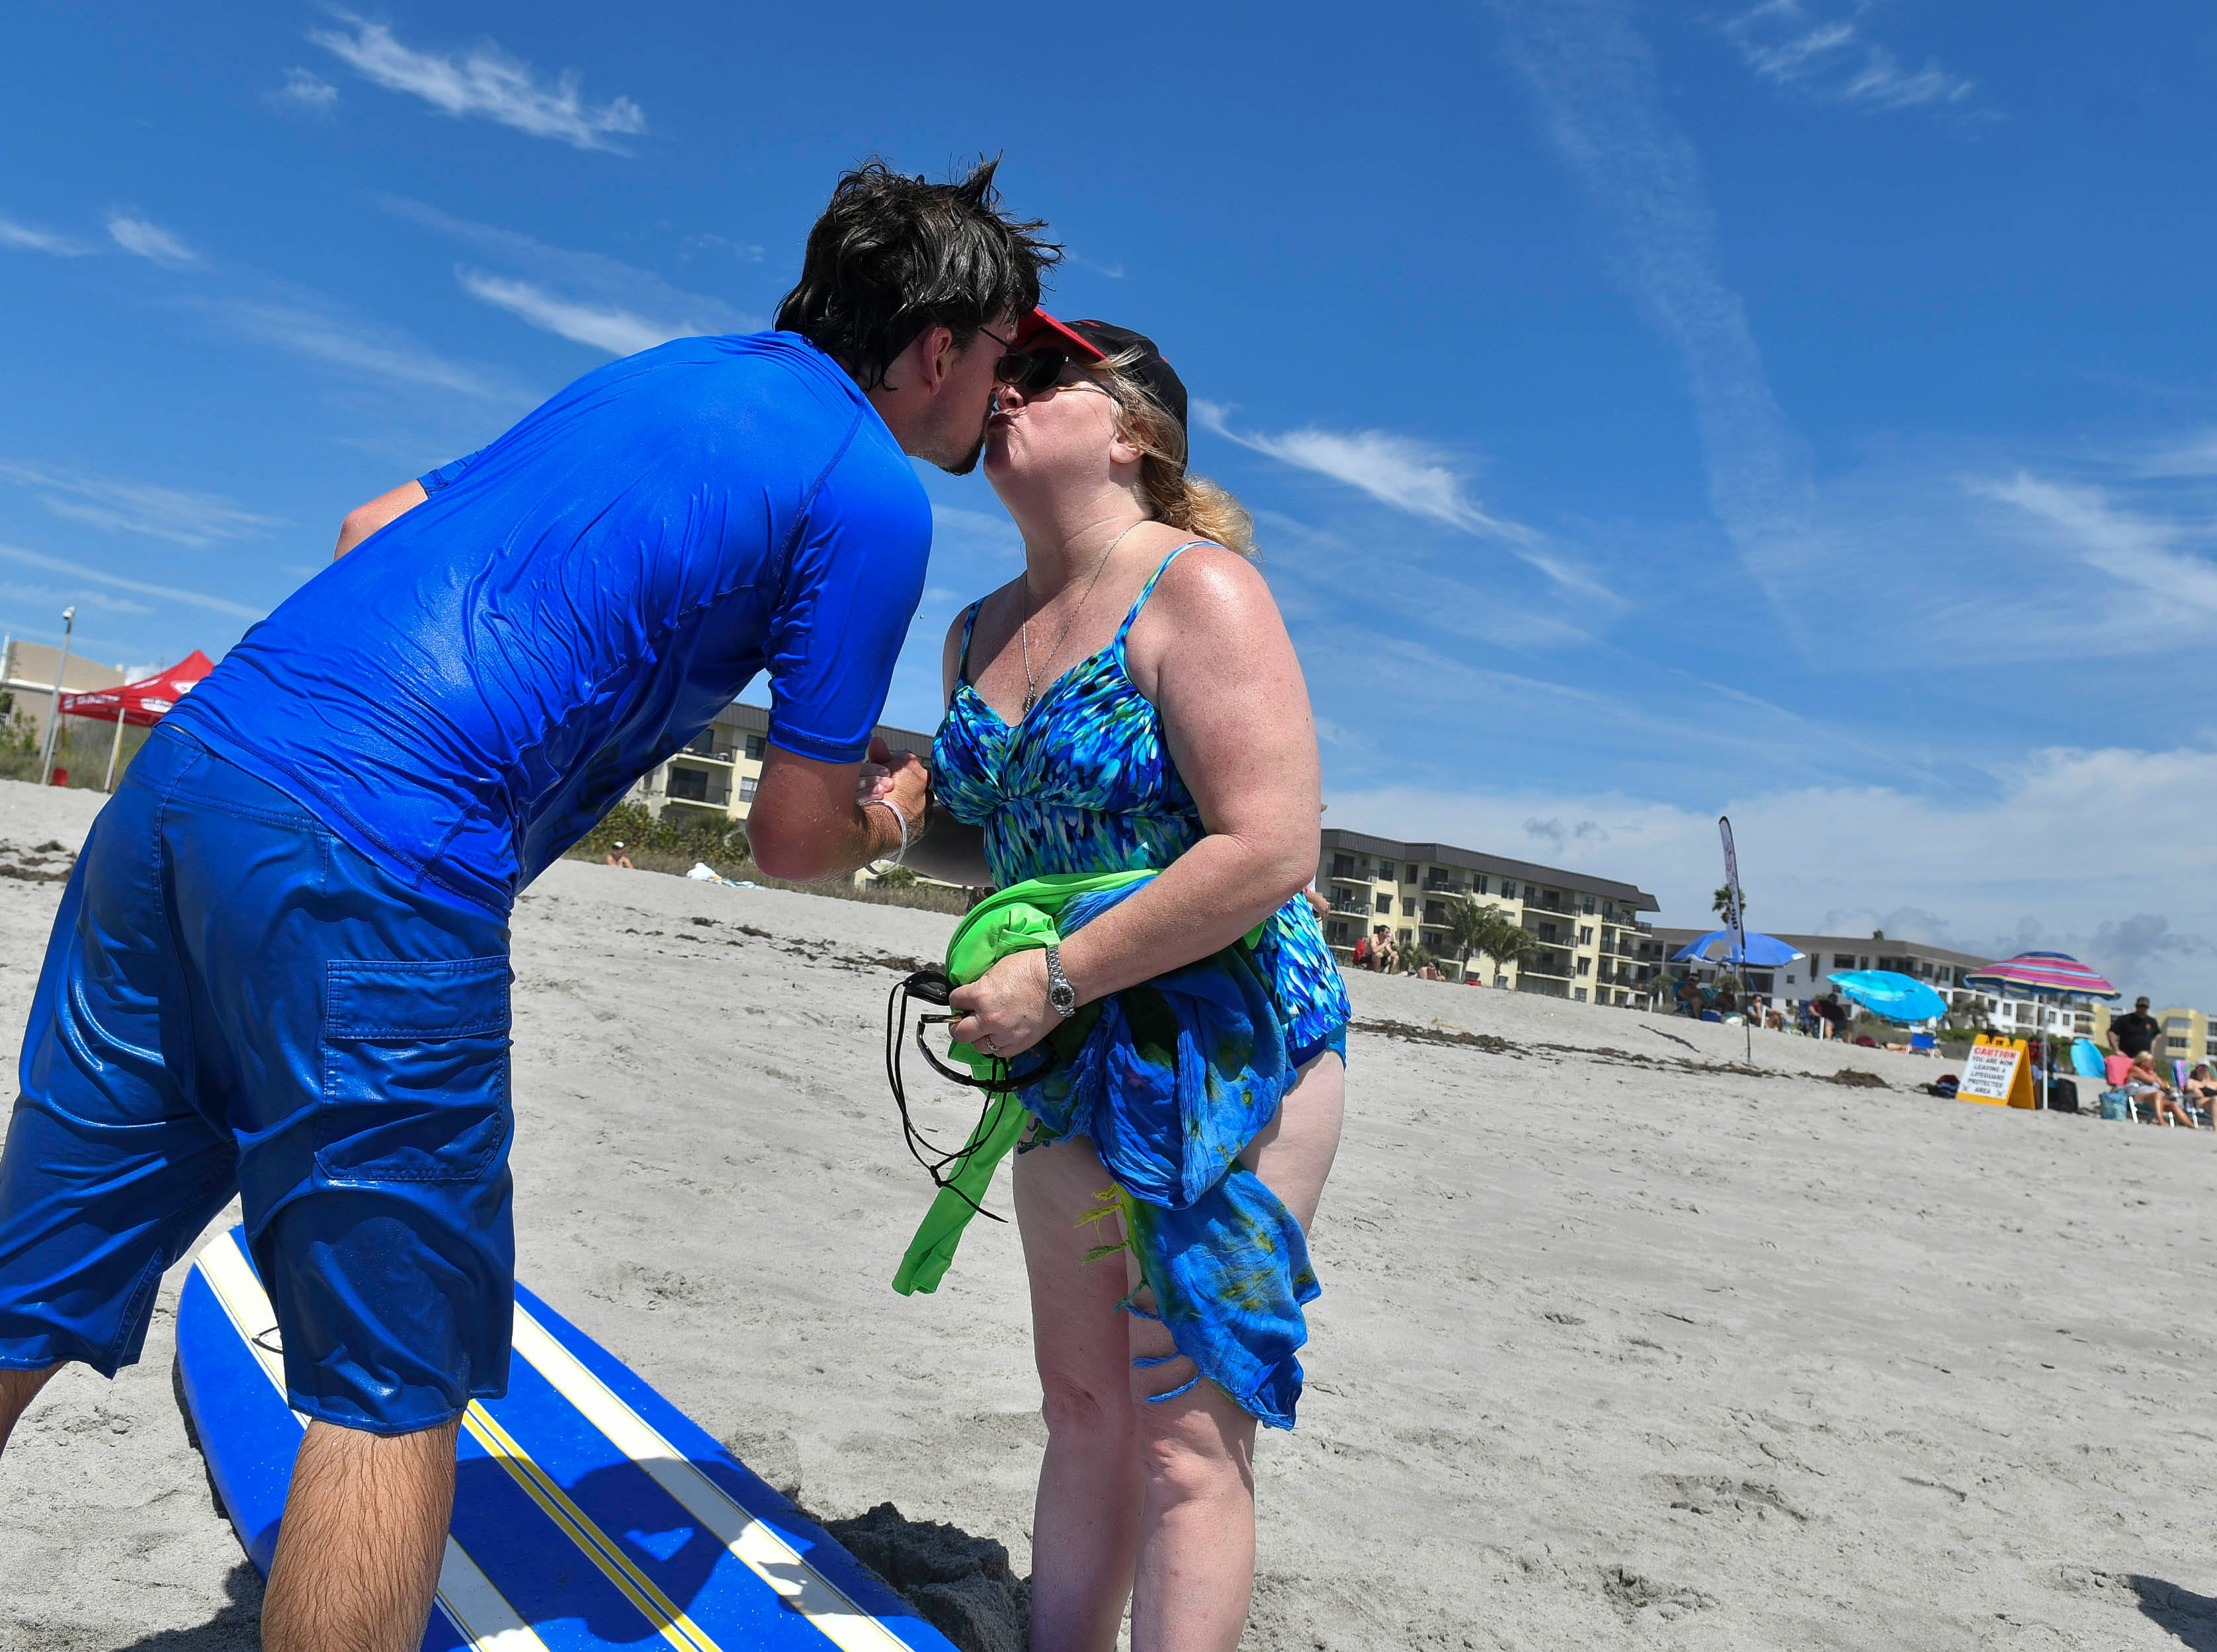 Peggy Hutchison-Padron high kisses her son Bryan Padron after he finished competing in the Special Olympic spring surfing festival at Shepard Park.